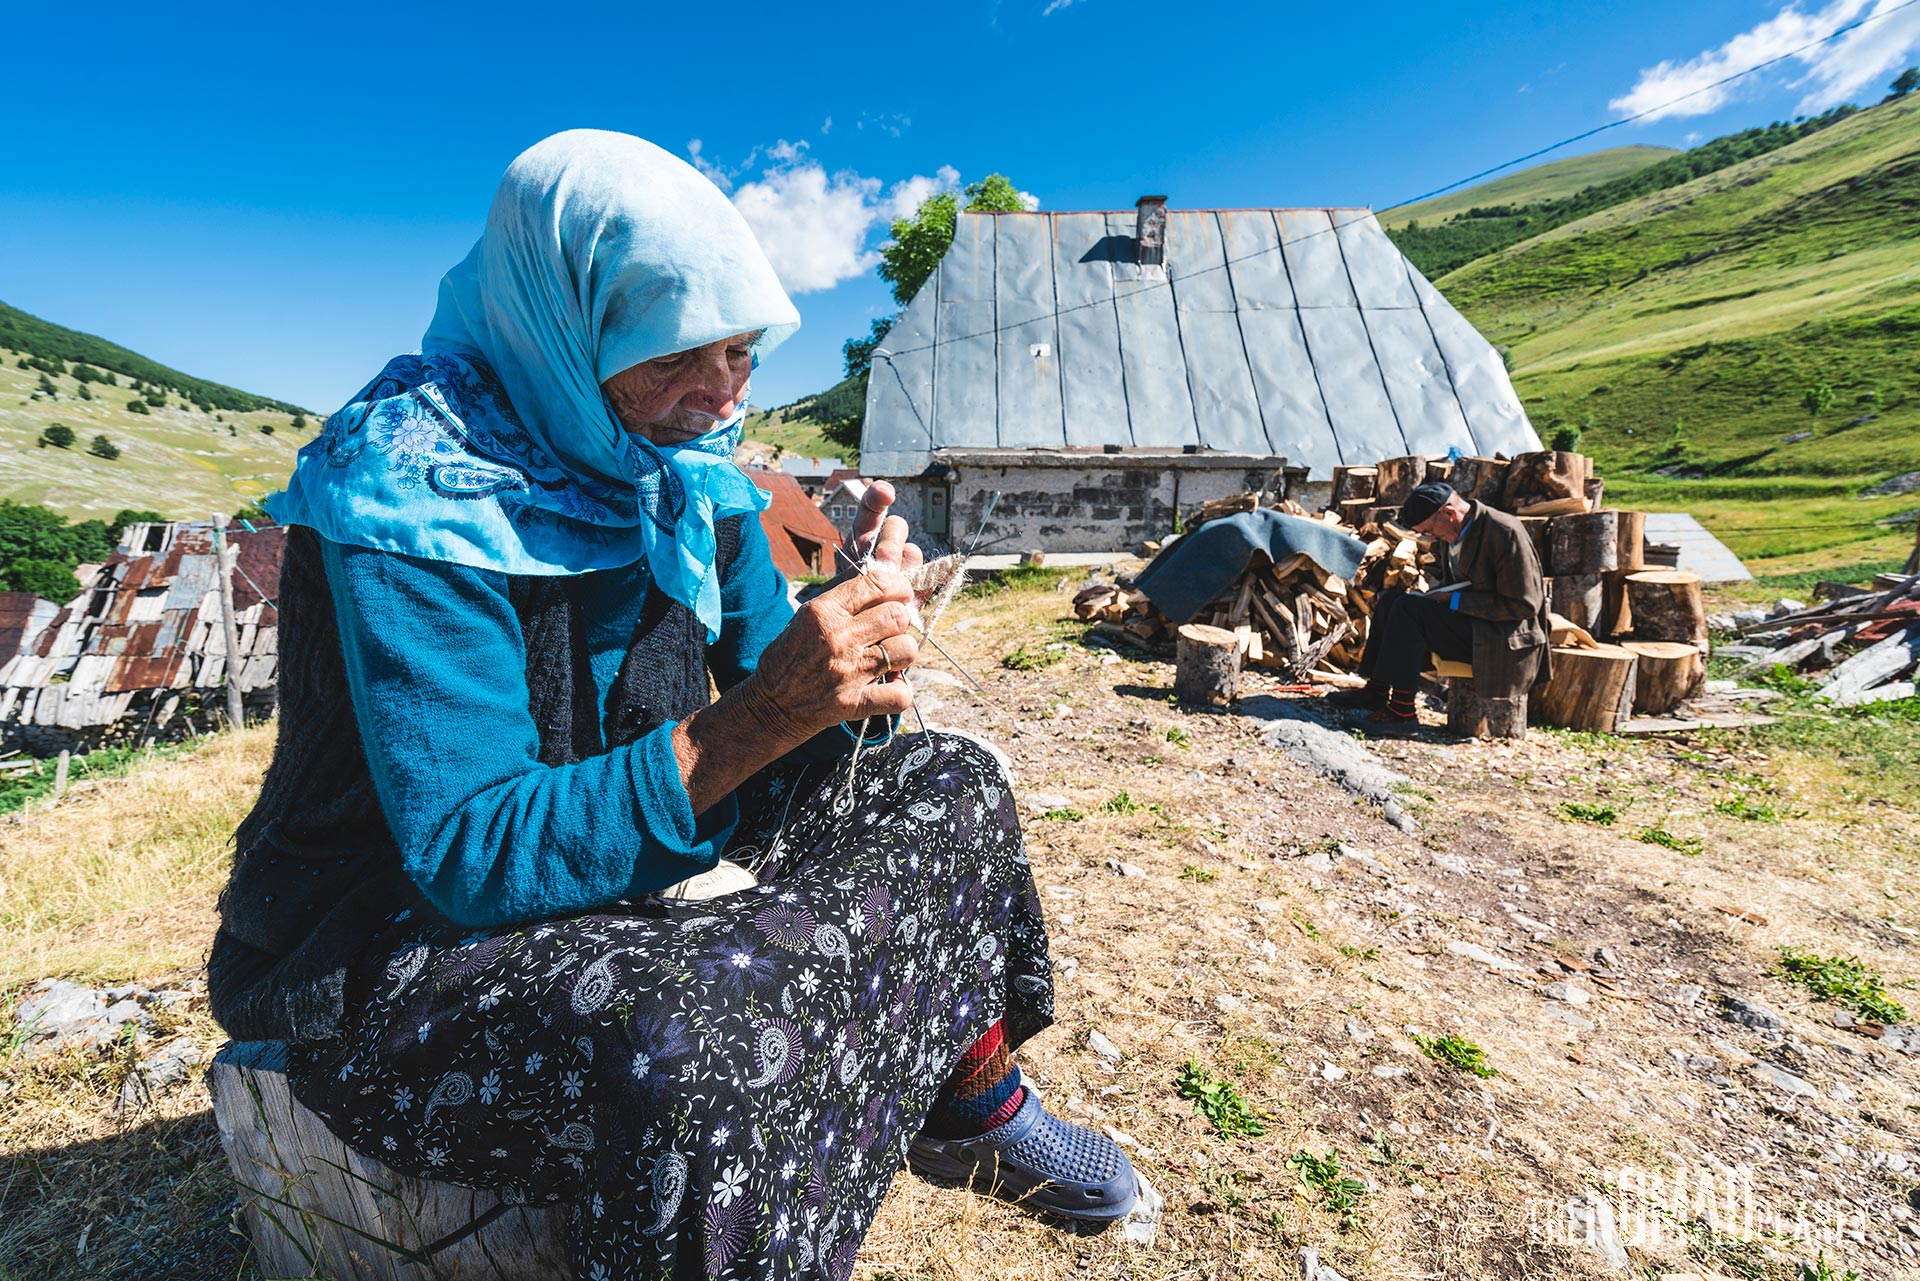 Village elders of Lukomir making wooden spoons and woolen socks for tourists in their backyard